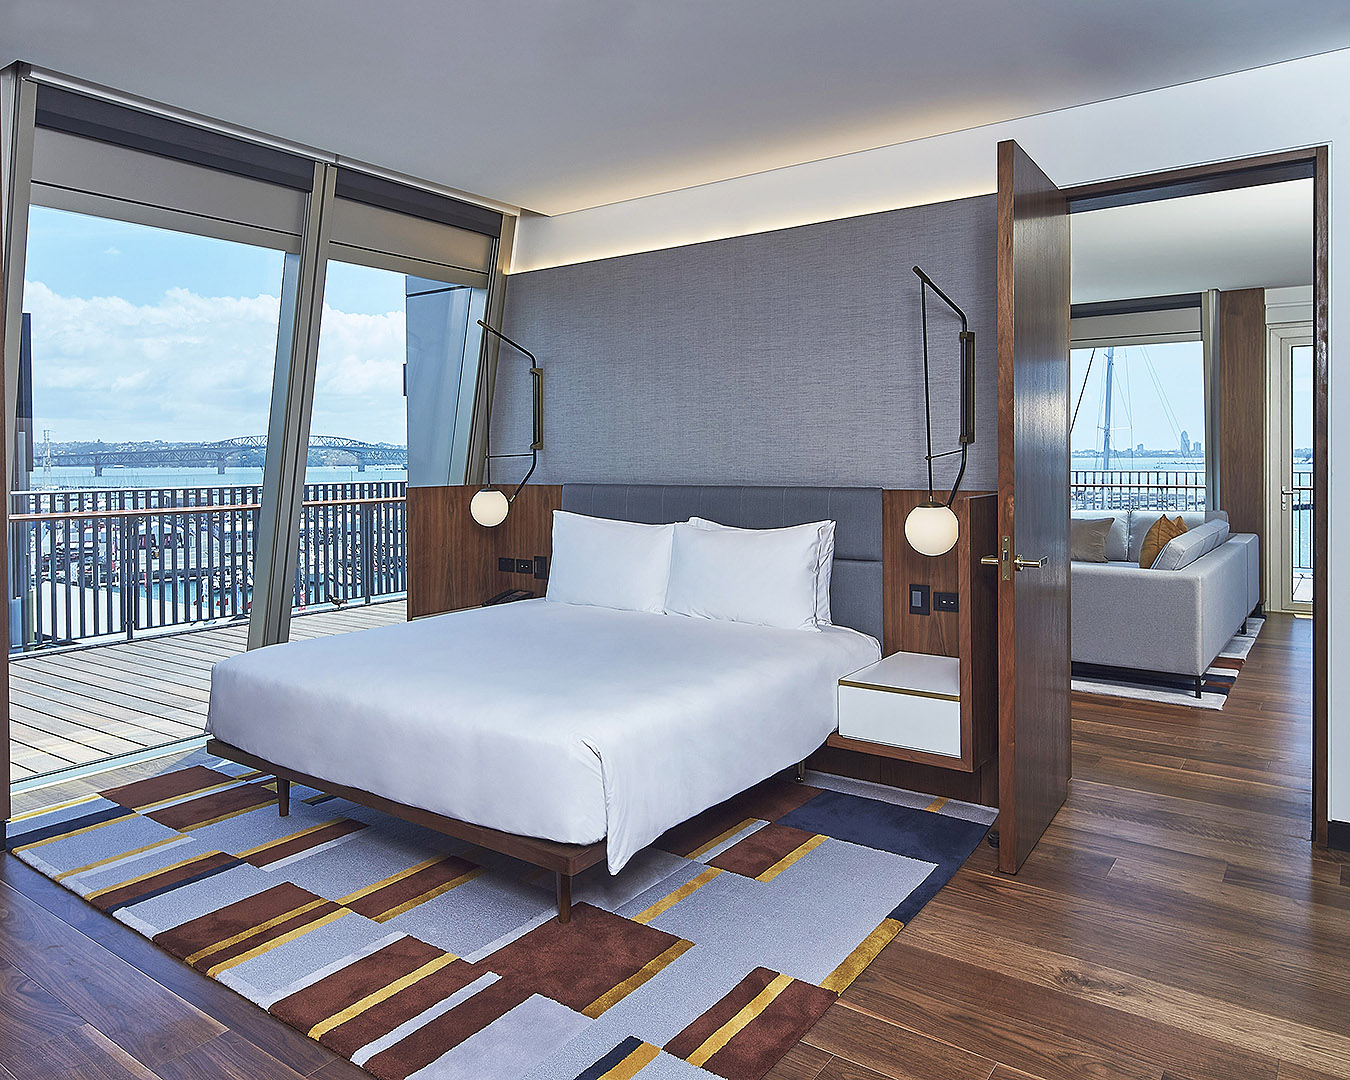 The executive room suite at Park Hyatt shows a bed with amazing views.